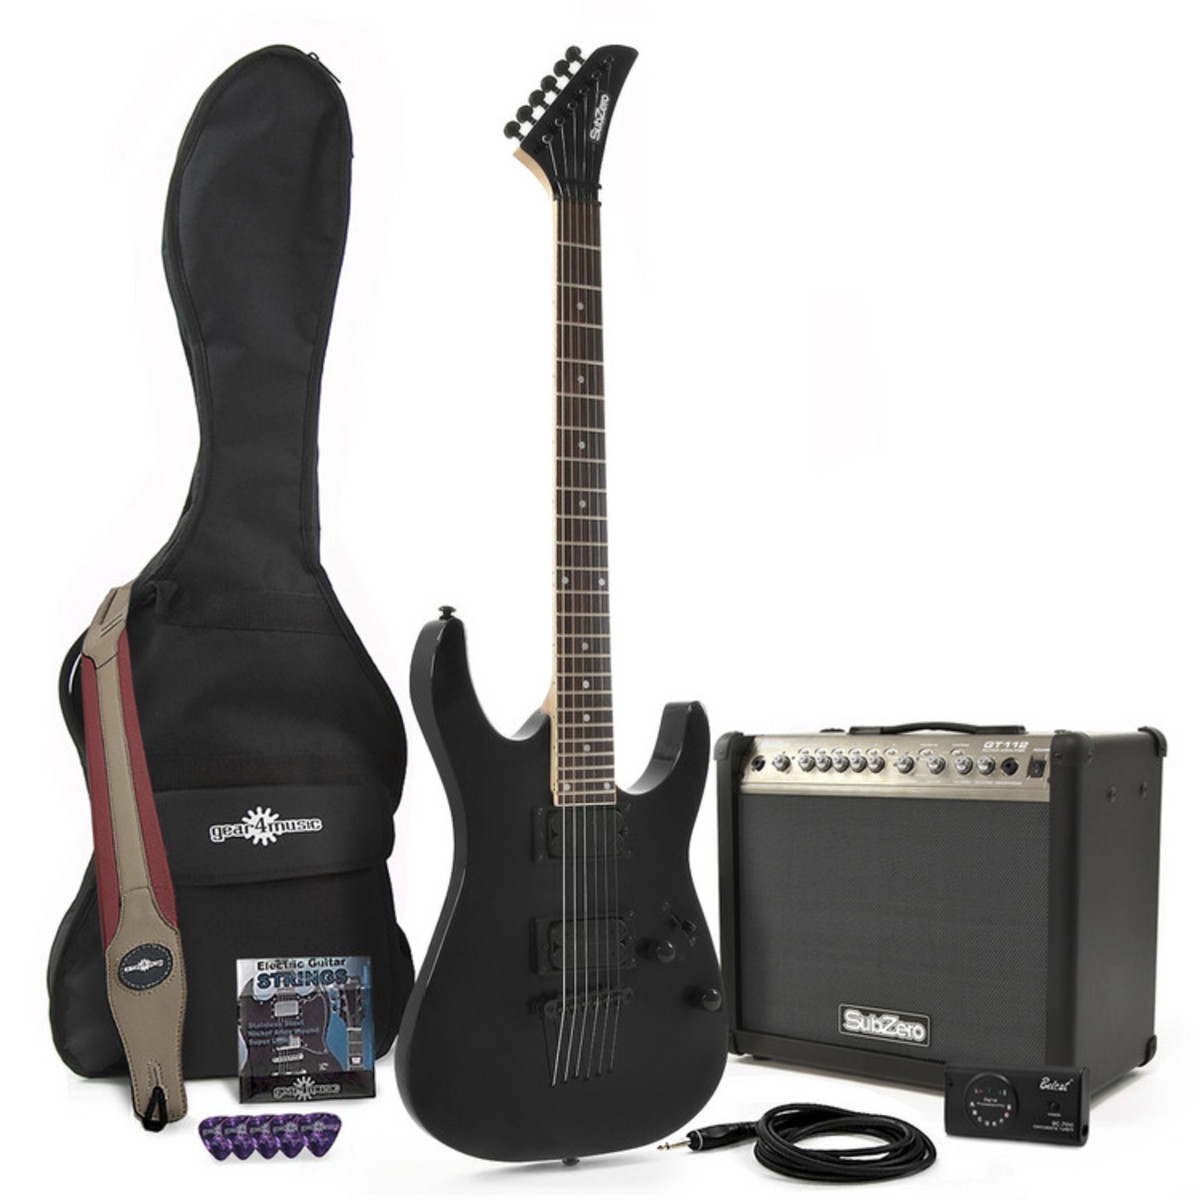 pack guitare lectrique portland 23 subzero noir ampli. Black Bedroom Furniture Sets. Home Design Ideas